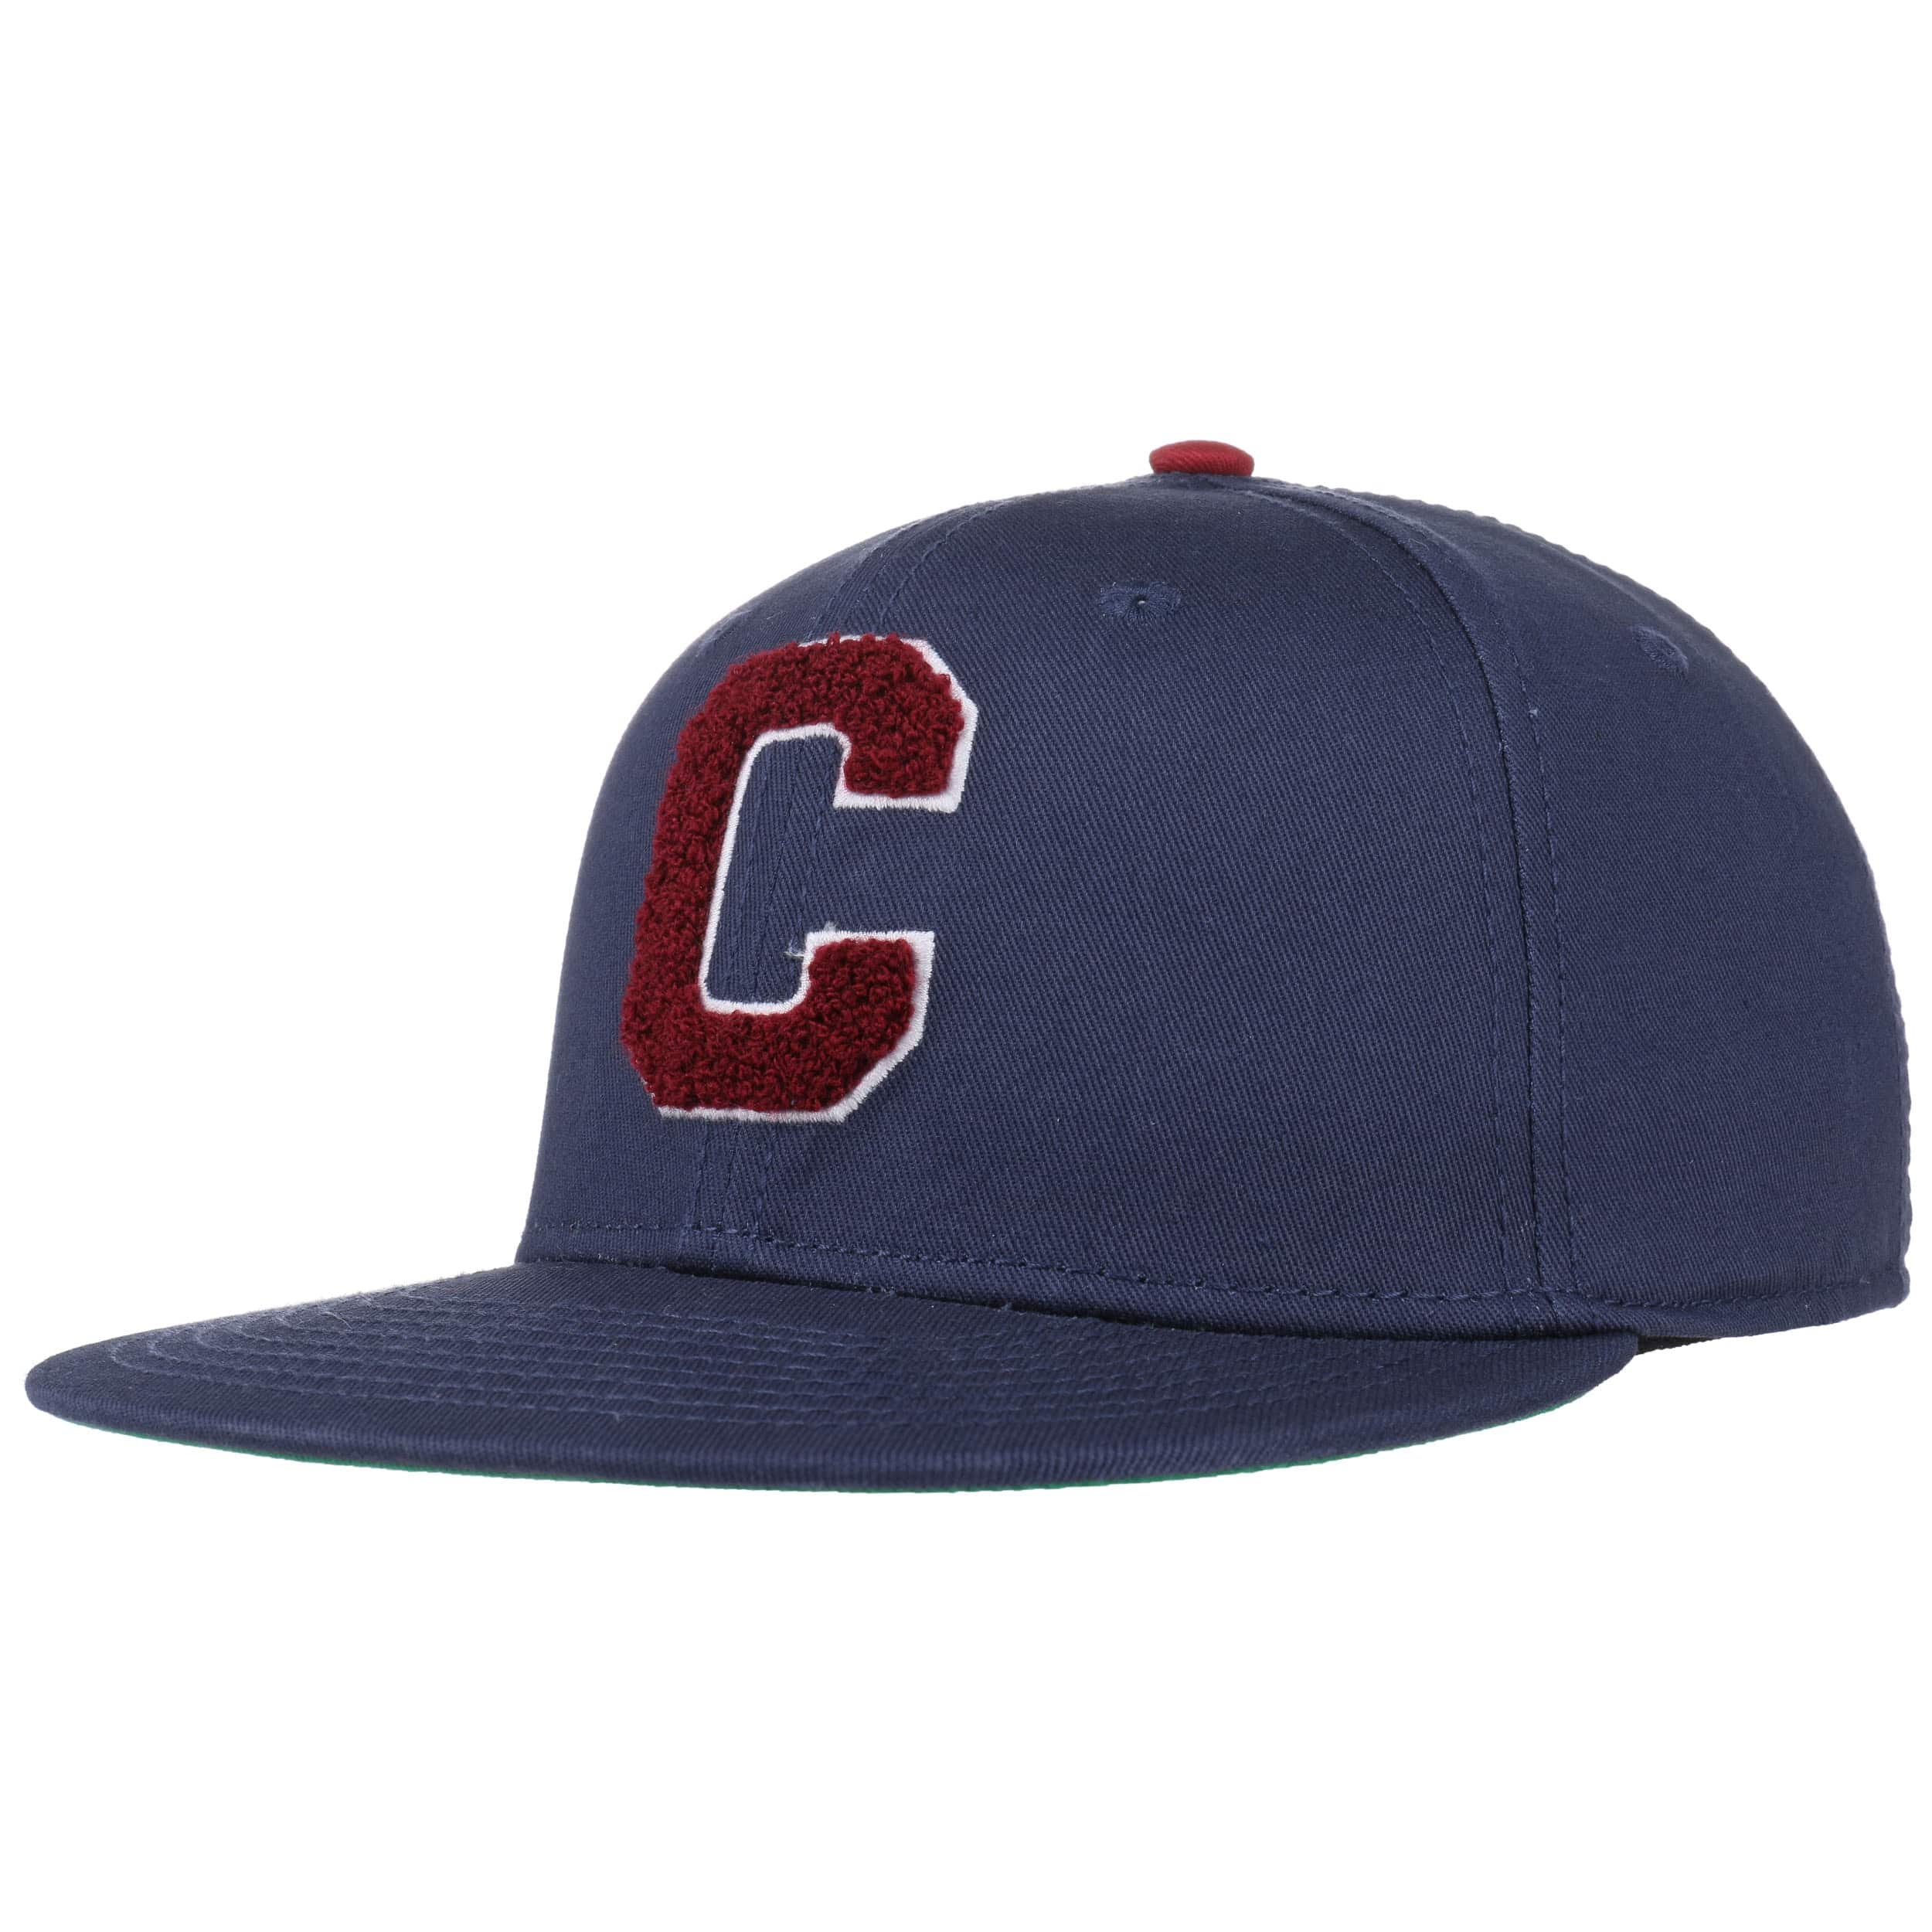 ... Chenille C Snapback Cap by Converse - navy 5 ... 045cacee9f81